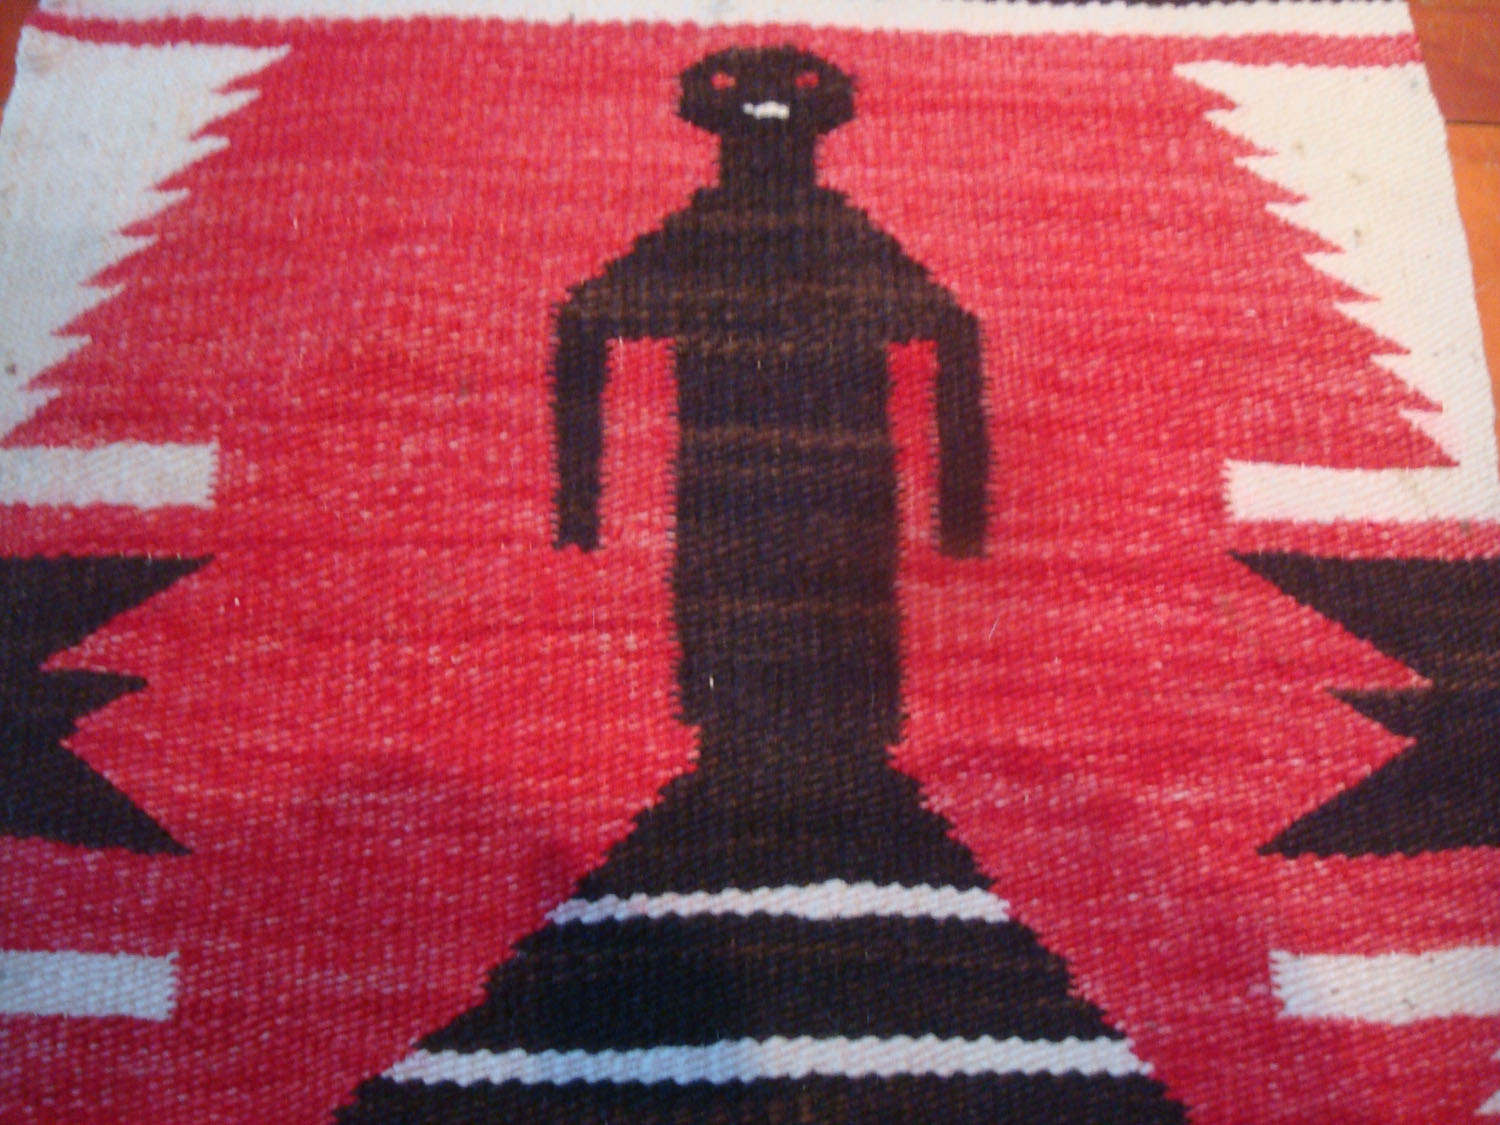 Native American Indian Vintage Textiles And Navajo Rugs A Lovely Weaving Depicting Woman